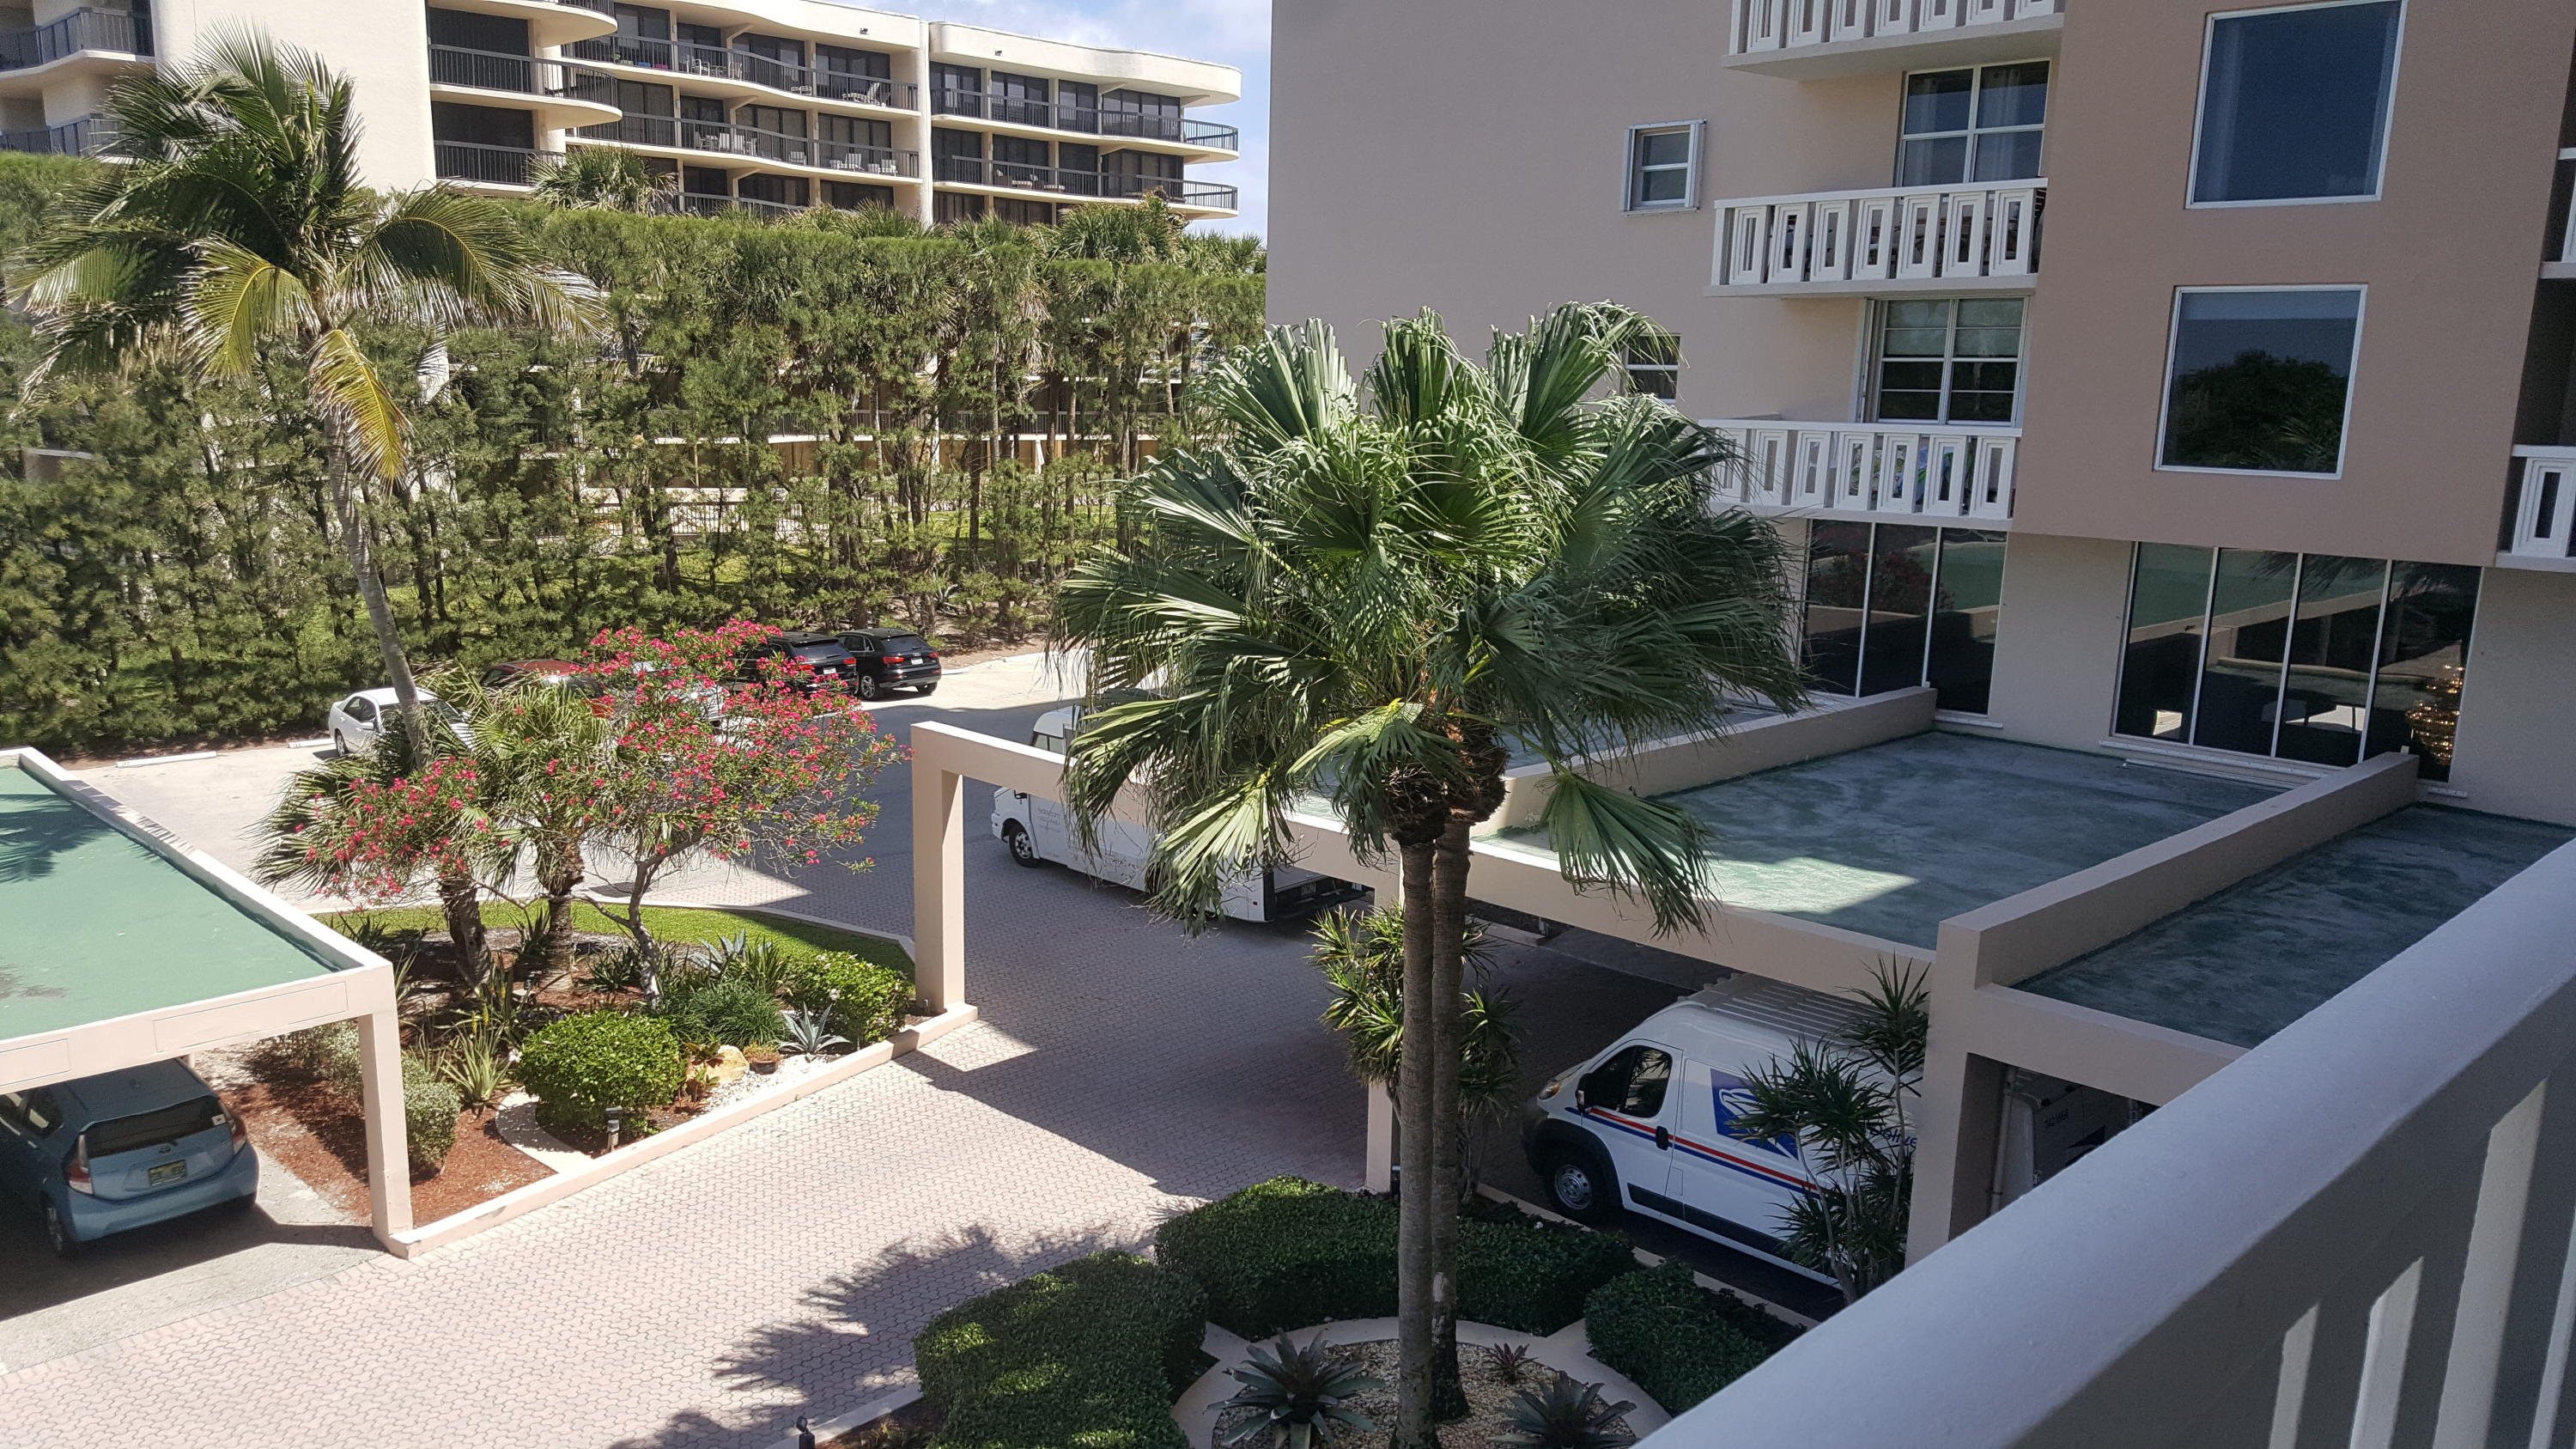 PATRICIAN OF PALM BEACH COND  PARCEL 224